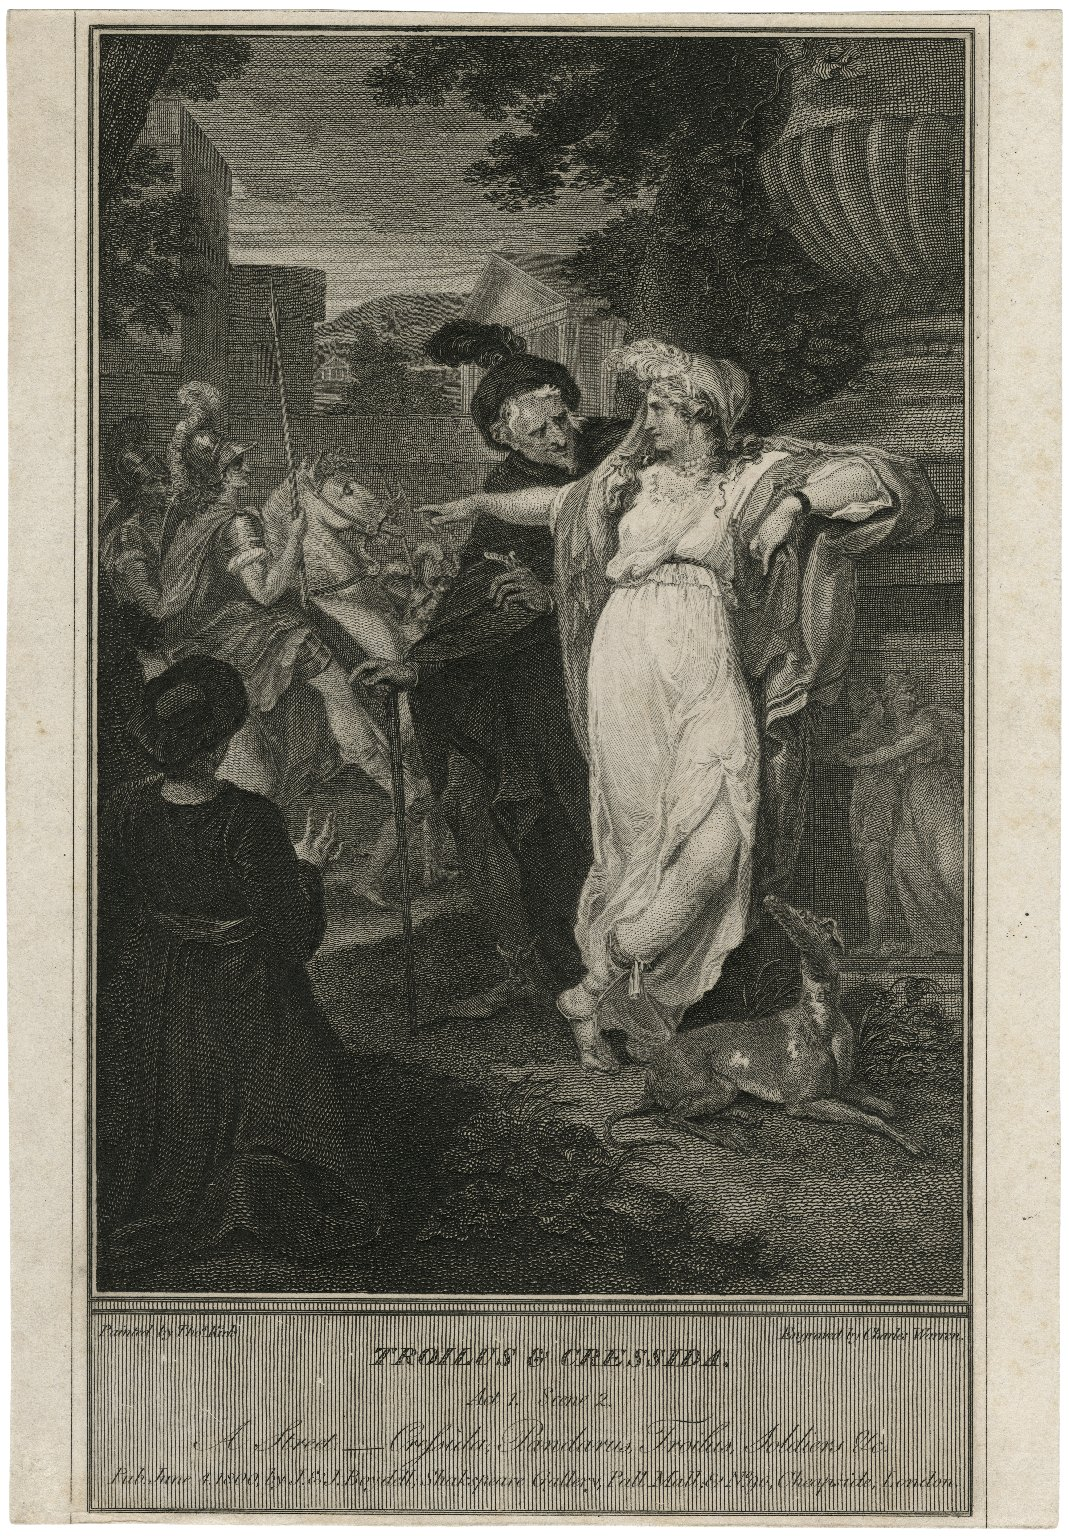 Troilus & Cressida, act 1, sc. 2, a street, Cressida, Pandarus, Troilus, soldiers &c. [graphic] / painted by Thos. Kirk ; engraved by Charles Warren.